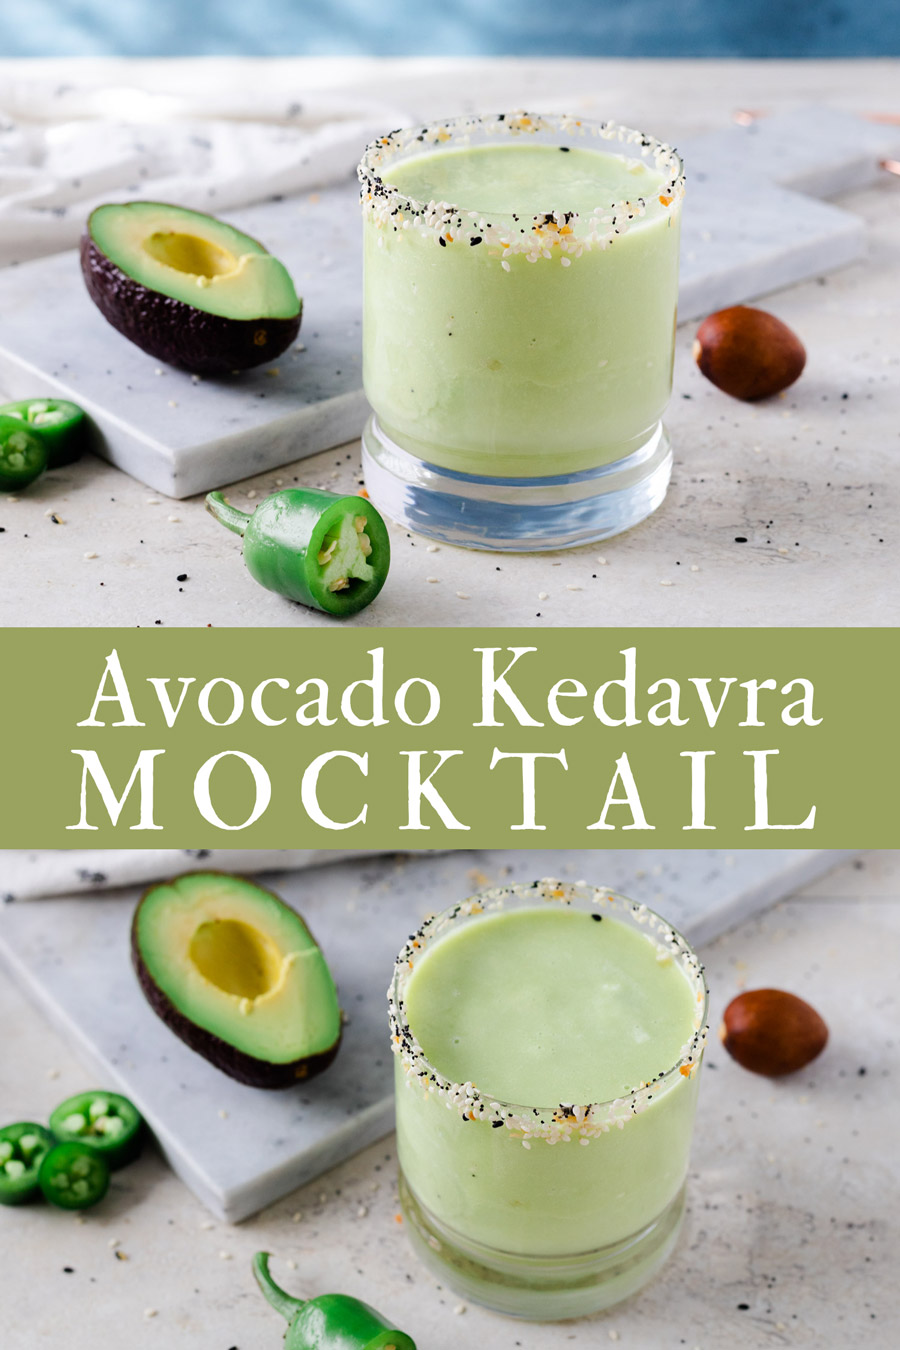 Avocado Kedavra is a no-alcohol cocktail with similar notes to sour cocktails with a hint of heat. It a perfect dry January cocktail that's velvety smooth but packed with a citrus and jalapeño punch. #ElleTalk #Mocktail #Cocktail #Avocado #NoABV